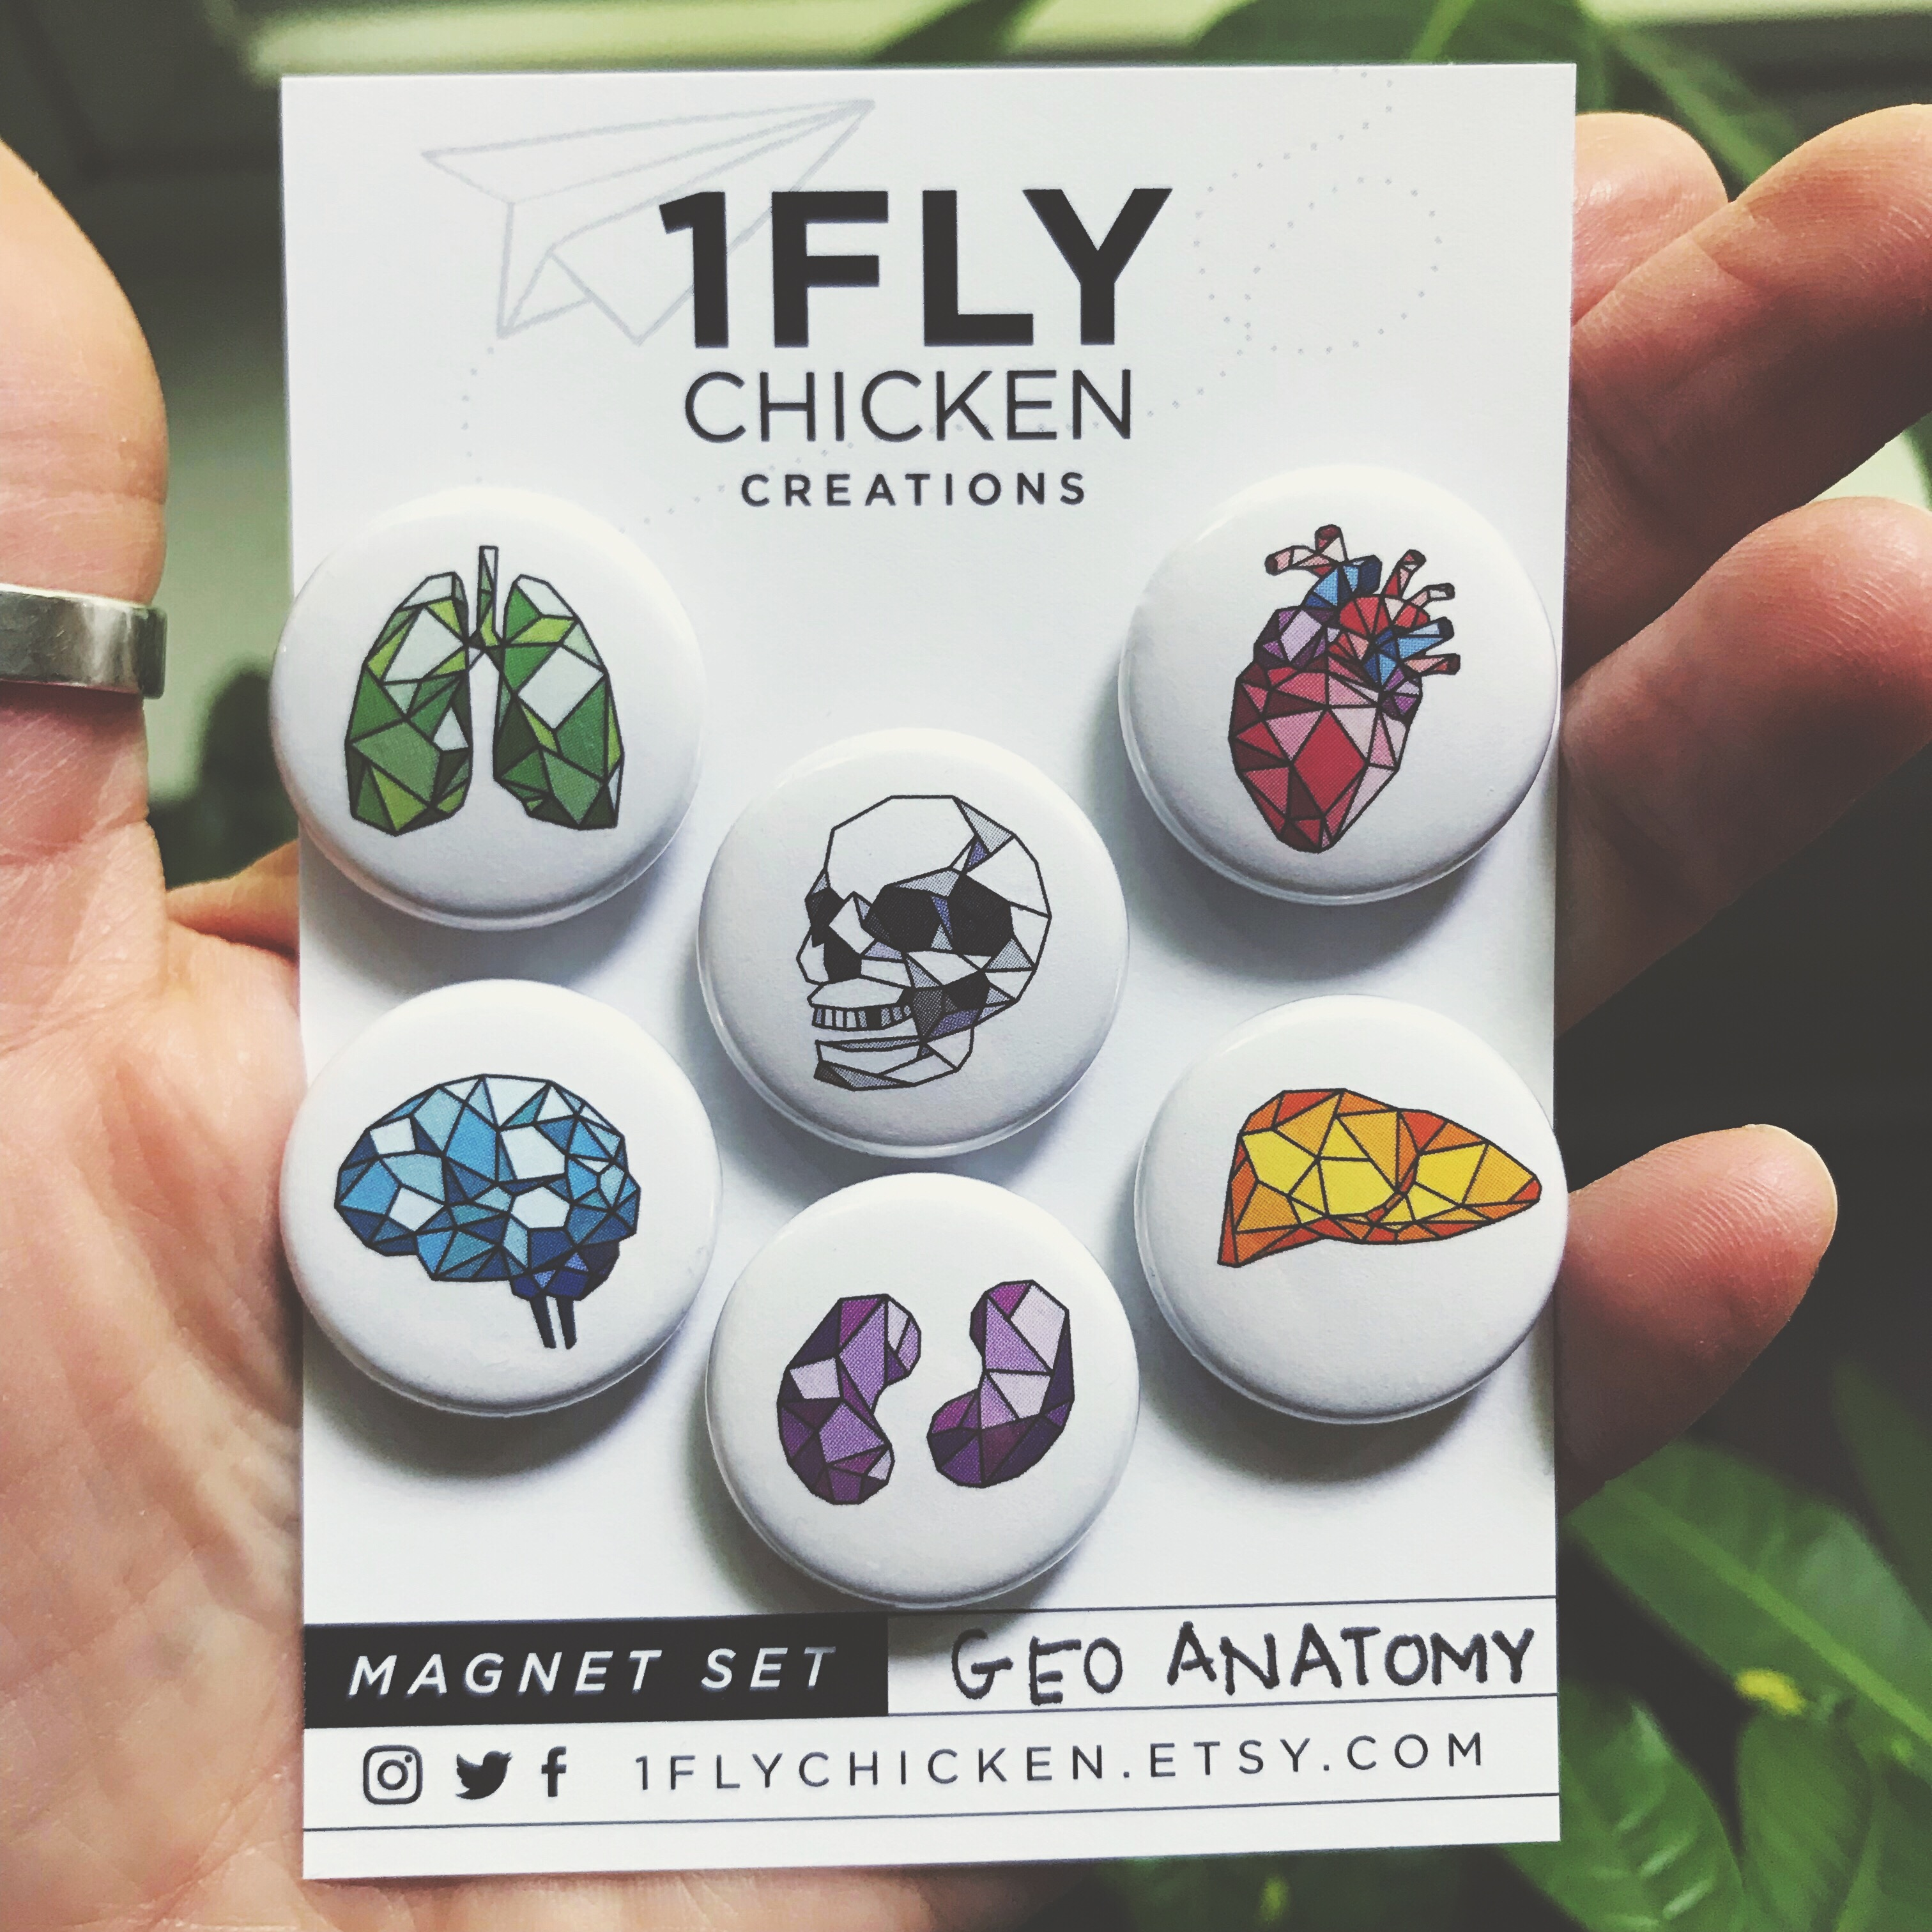 Handmade button magnets and pins by 1flychicken creations